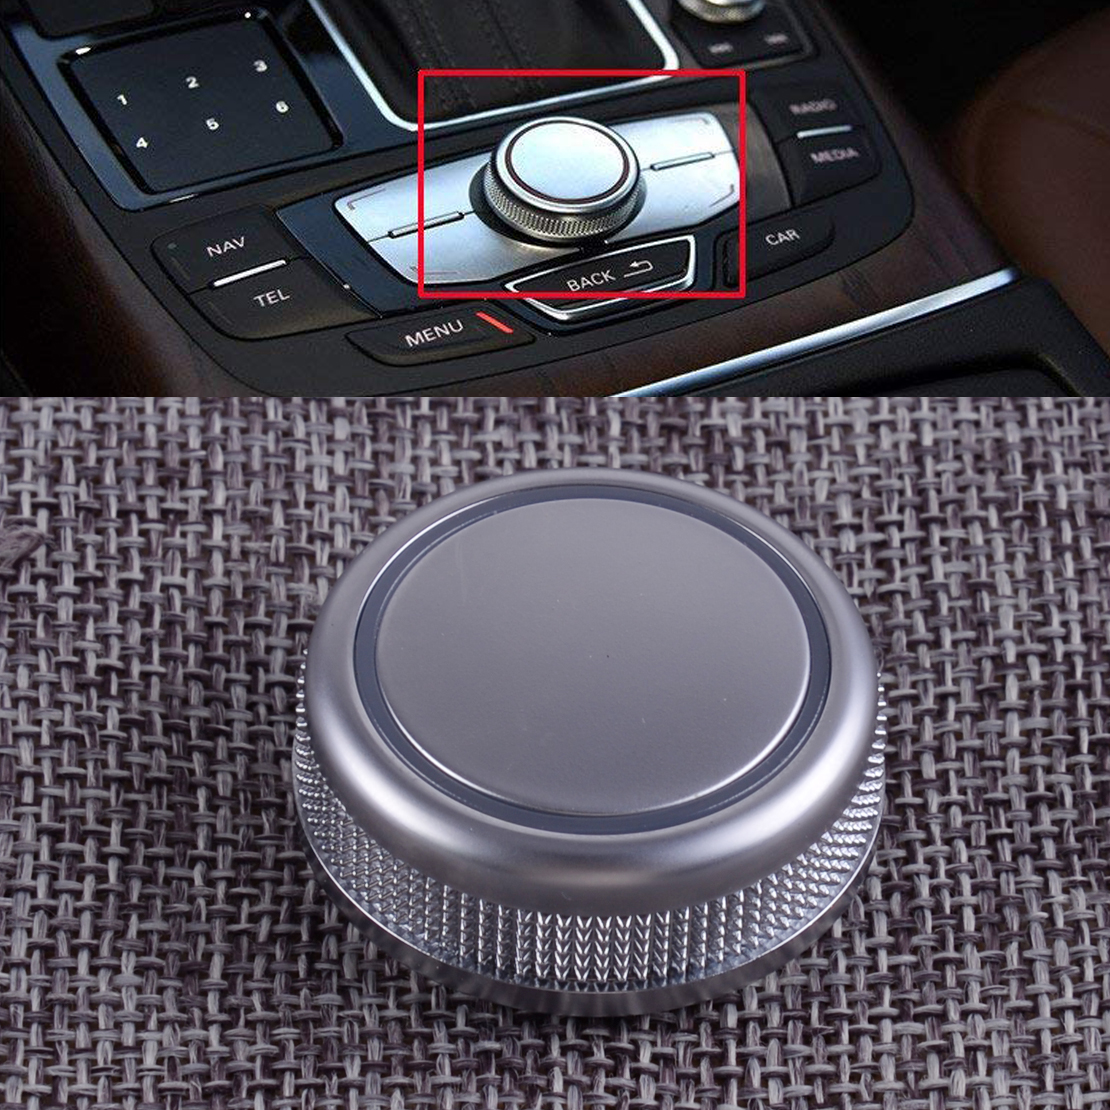 CITALL Car Chrome MMI Control Knob Rotary Menu Navigation Cover Fit for Audi A6 S6 C7 A7 RS6 RS7 4G0919069 2014 2015 2016 2017 image